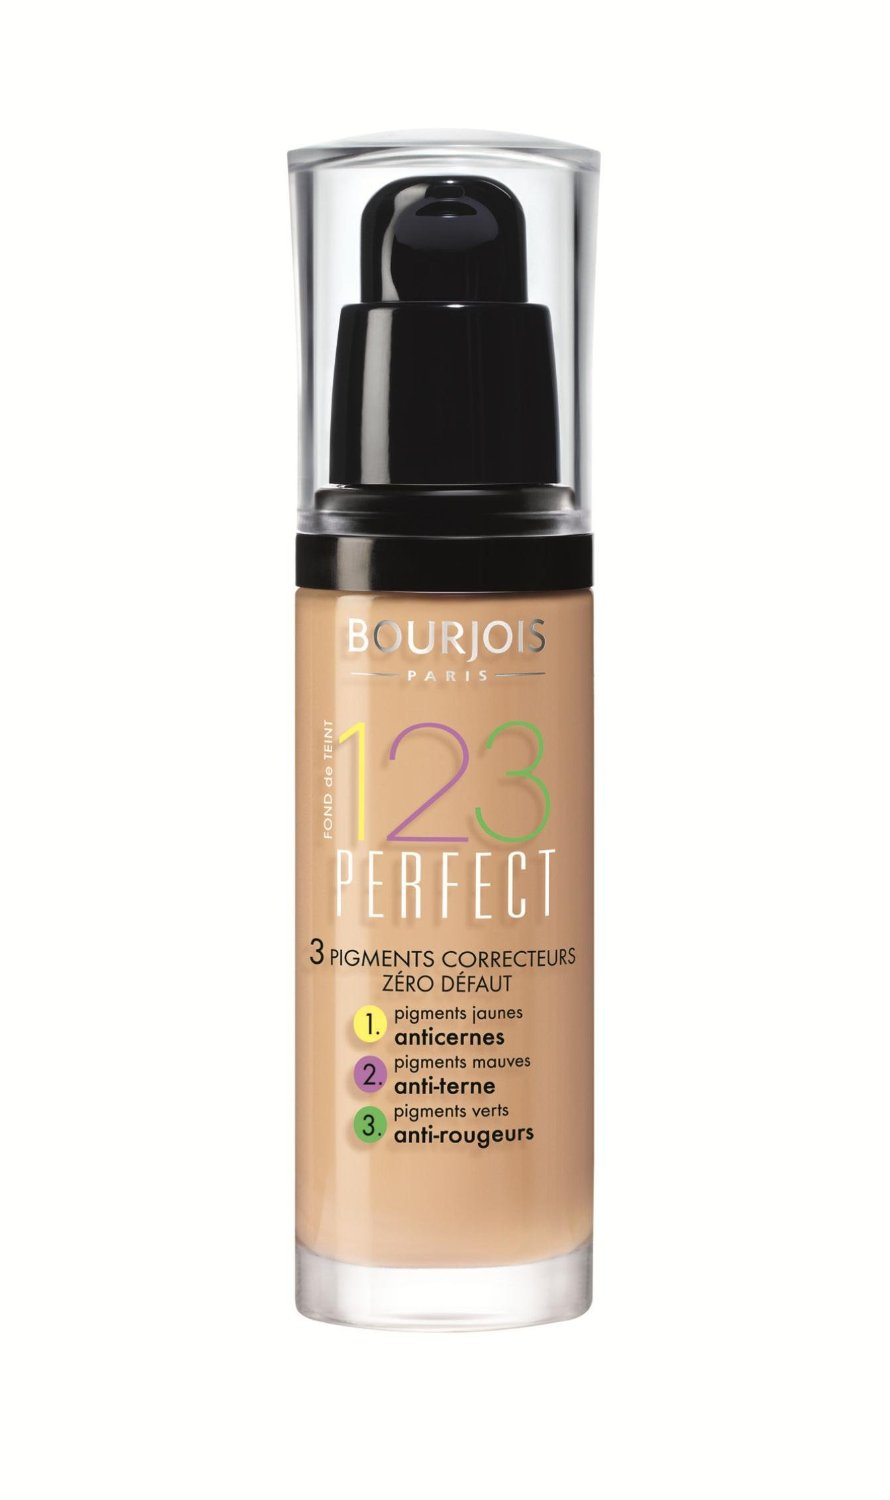 bourjois 123 perfect foundation various shades 30ml new sealed ebay. Black Bedroom Furniture Sets. Home Design Ideas